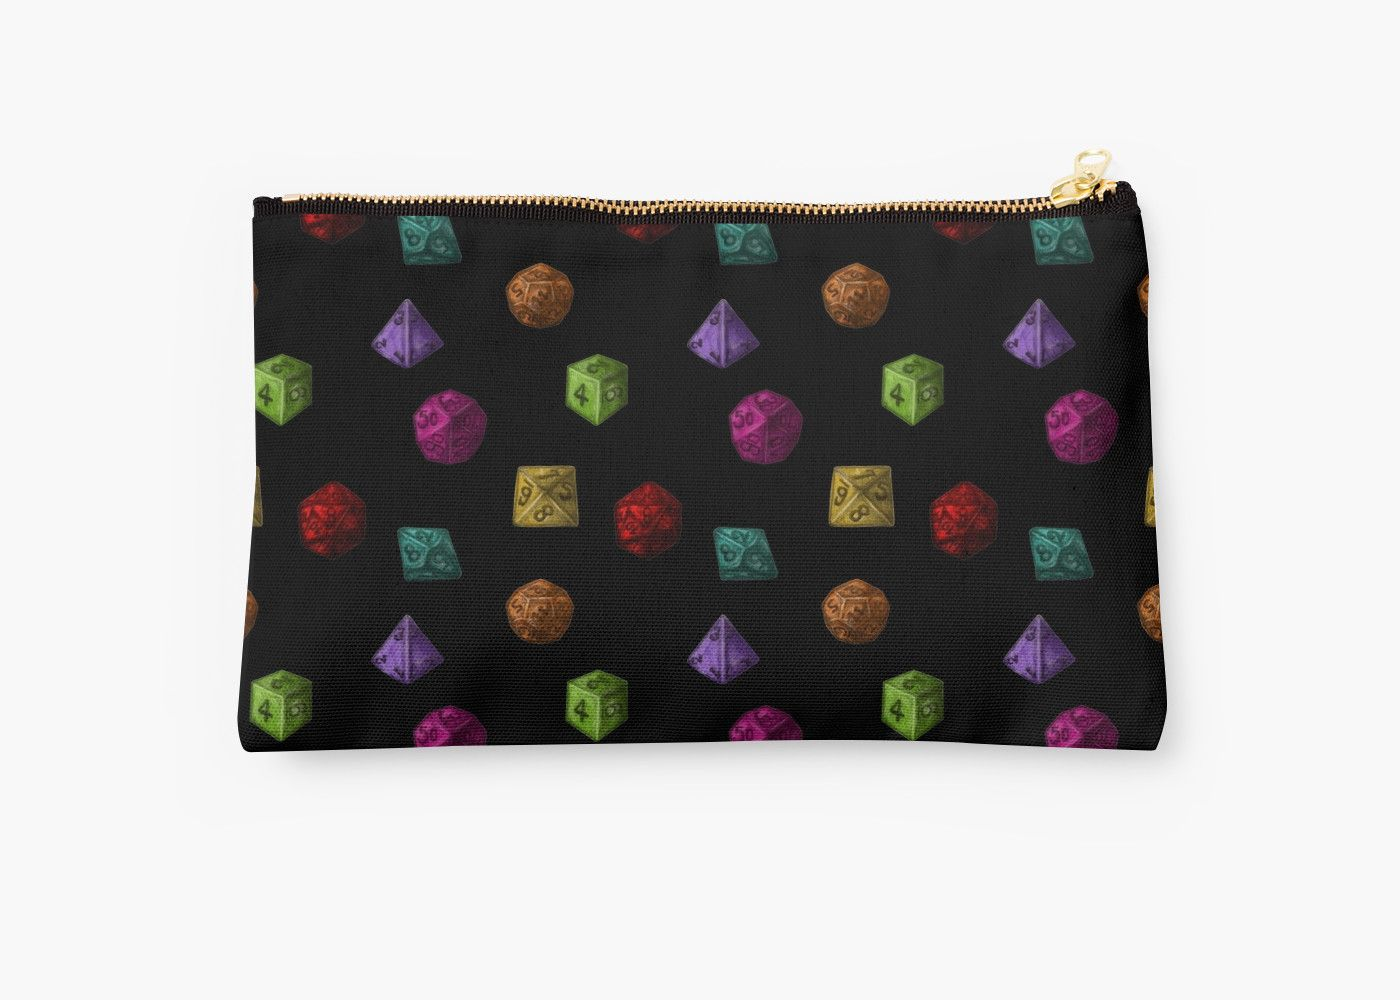 Colourful Polyhedron Dice on Studio Pouch by Imogen Smid, this would be great as a dice bag or gaming accessories bag!